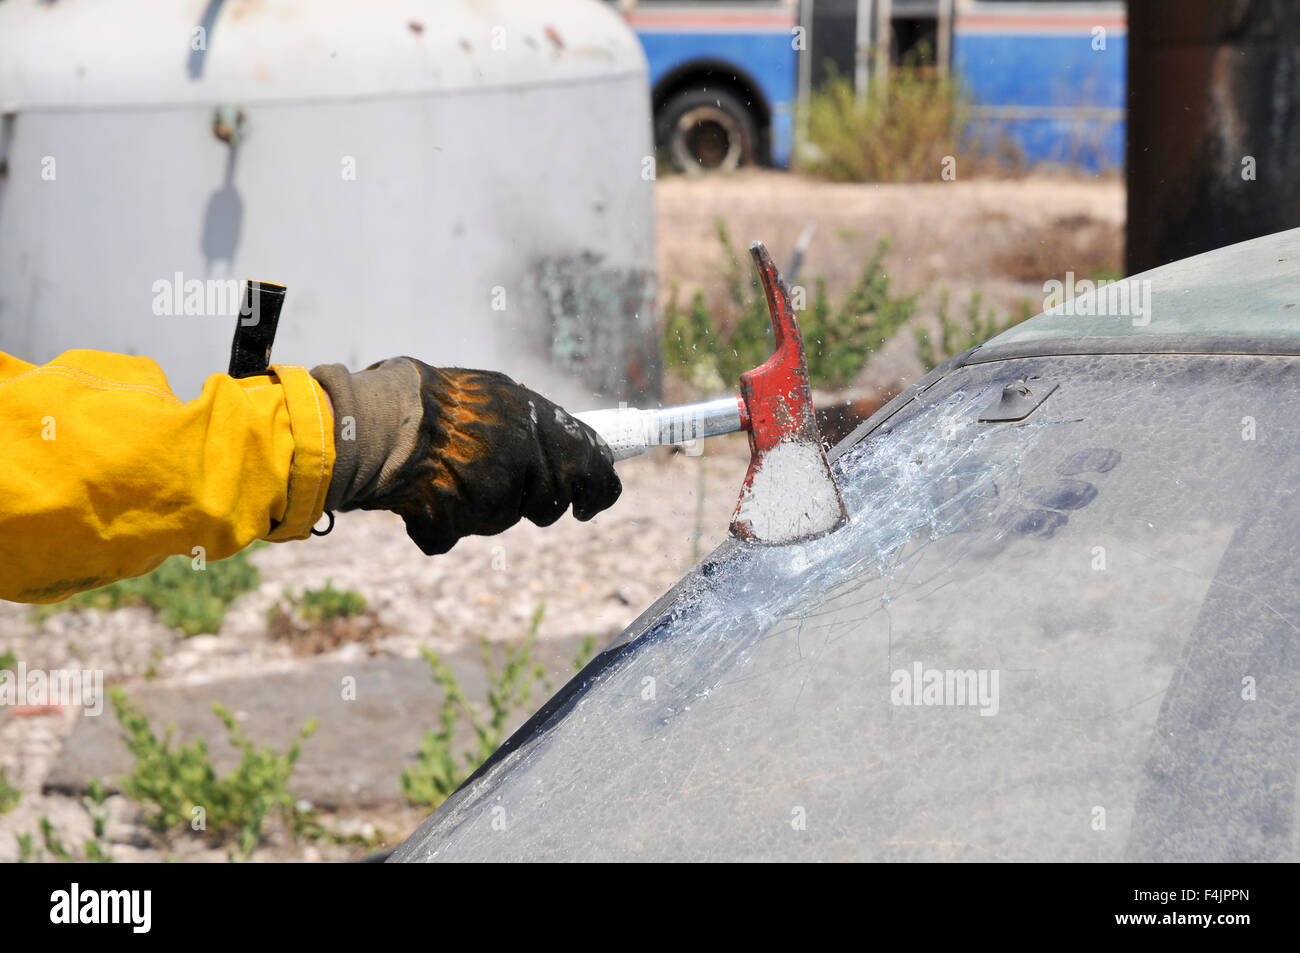 Firefighter uses an axe to break the front windshield of a car to rescue the trapped driver and passengers - Stock Image